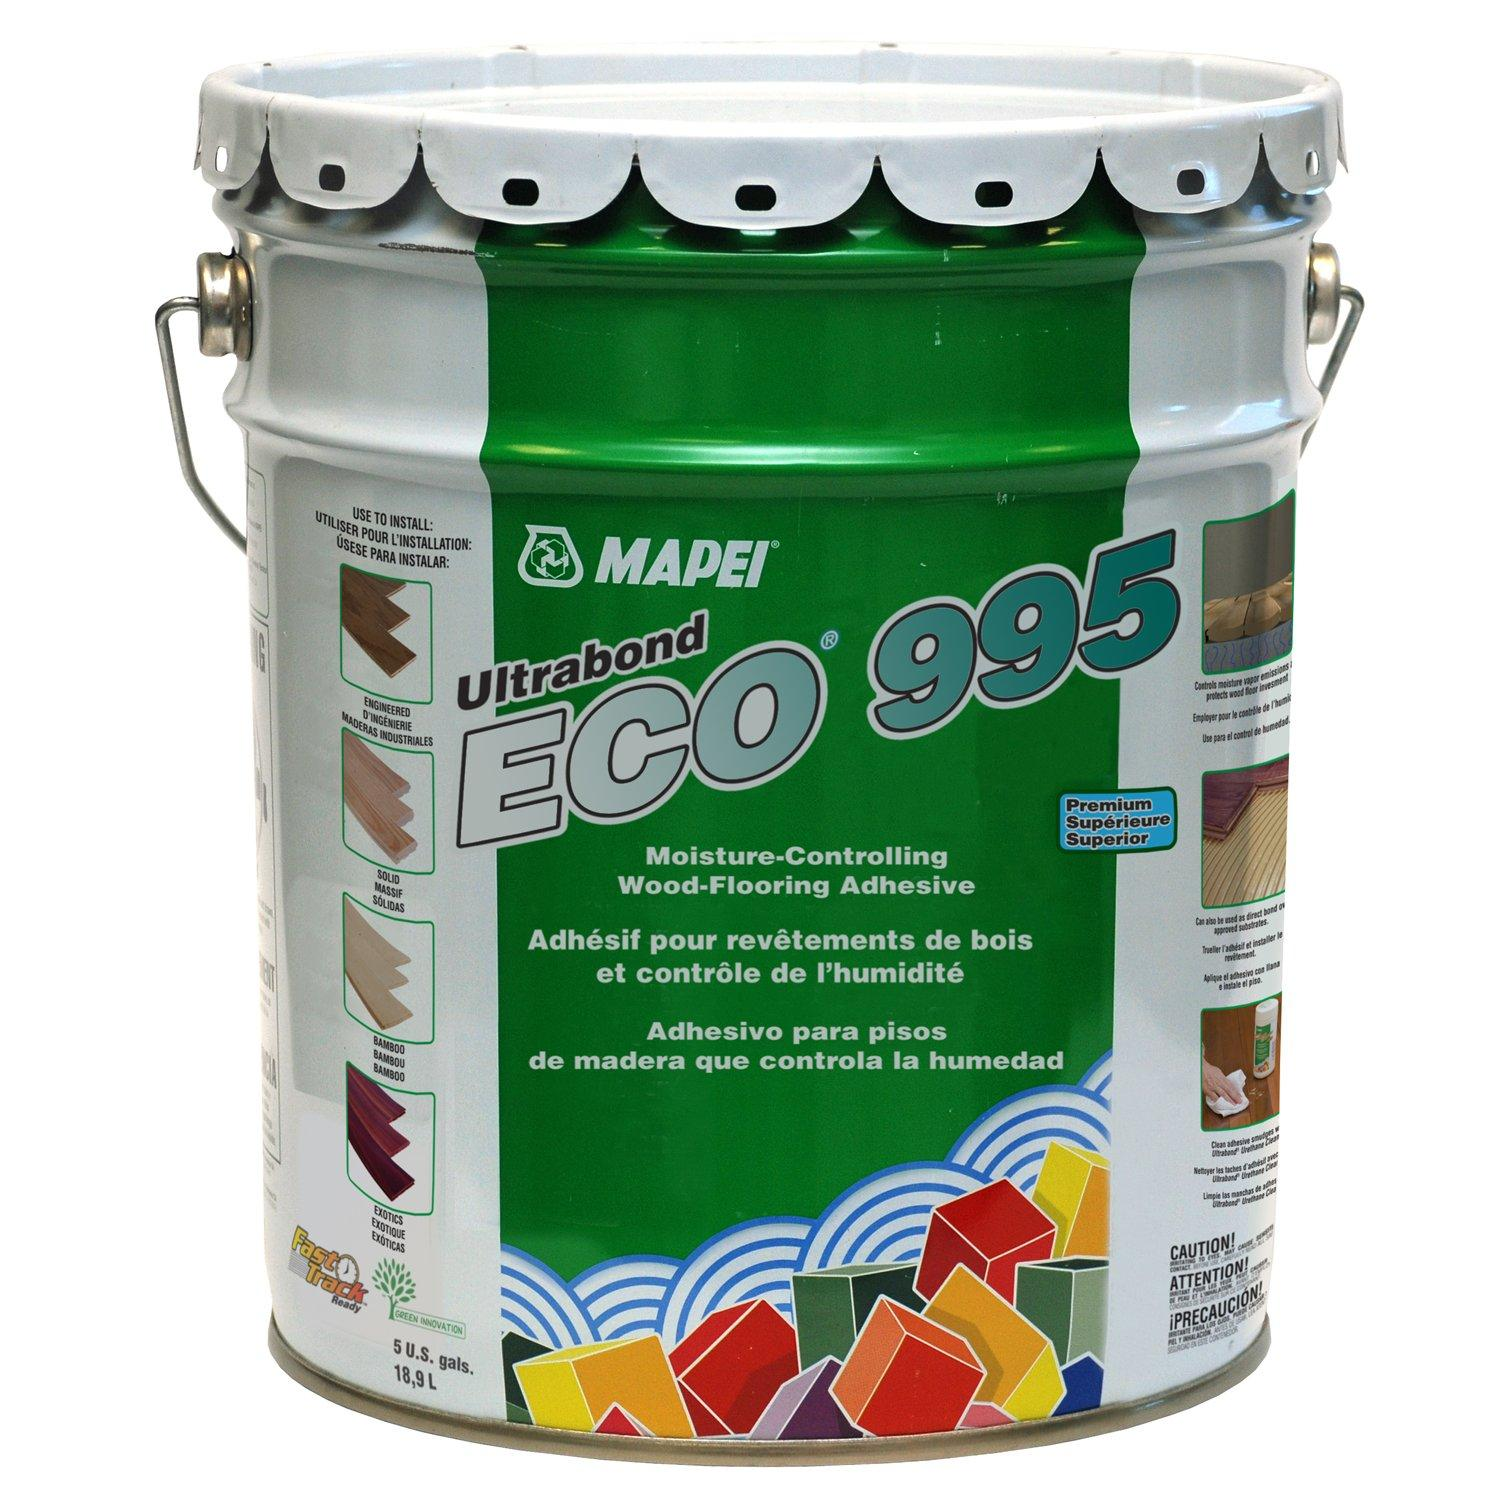 Mapei Ultrabond ECO 995 Wood Flooring Adhesive - Wood Adhesives Floor & Decor